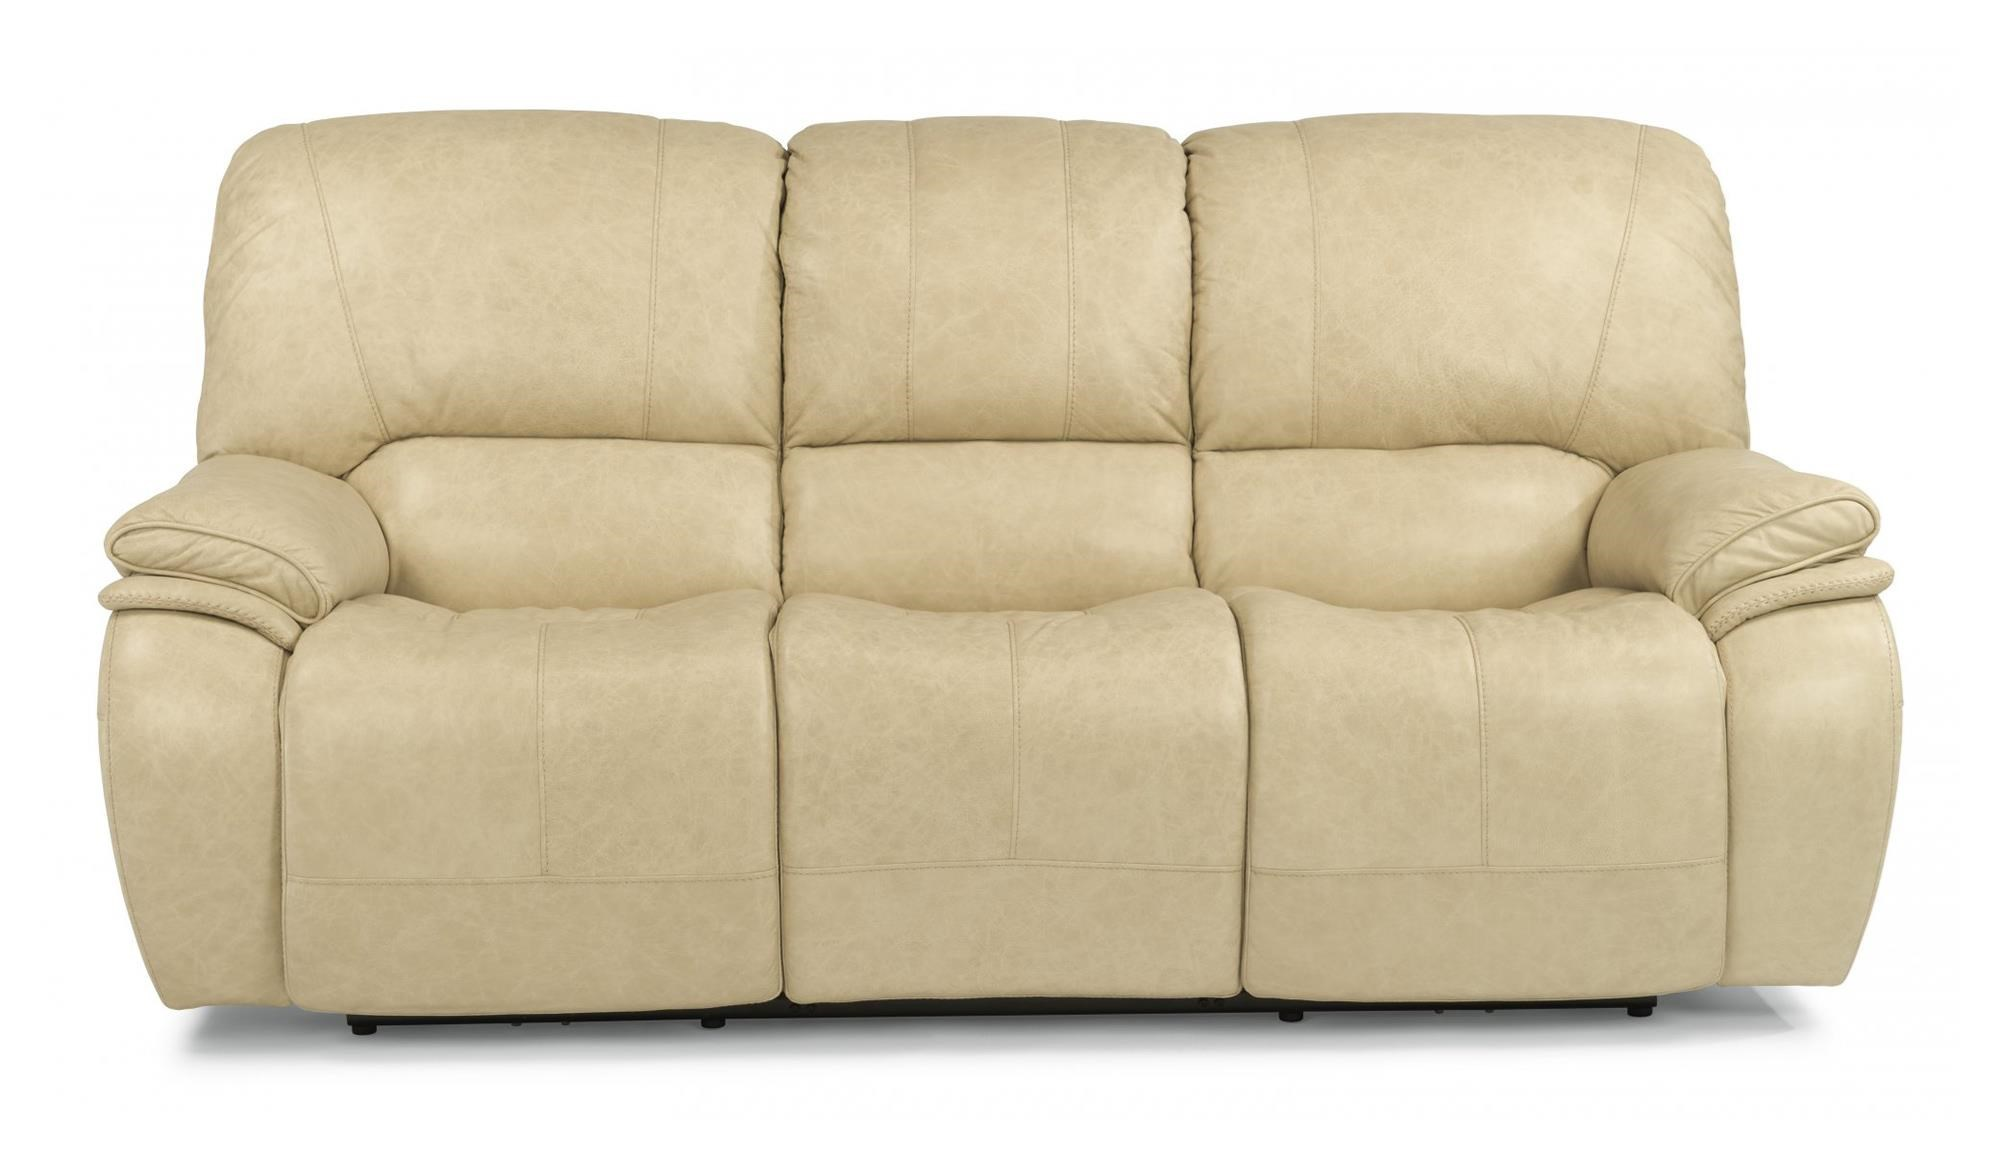 Flexsteel Tobias Power Reclining Sofa with Power Headrest and USB